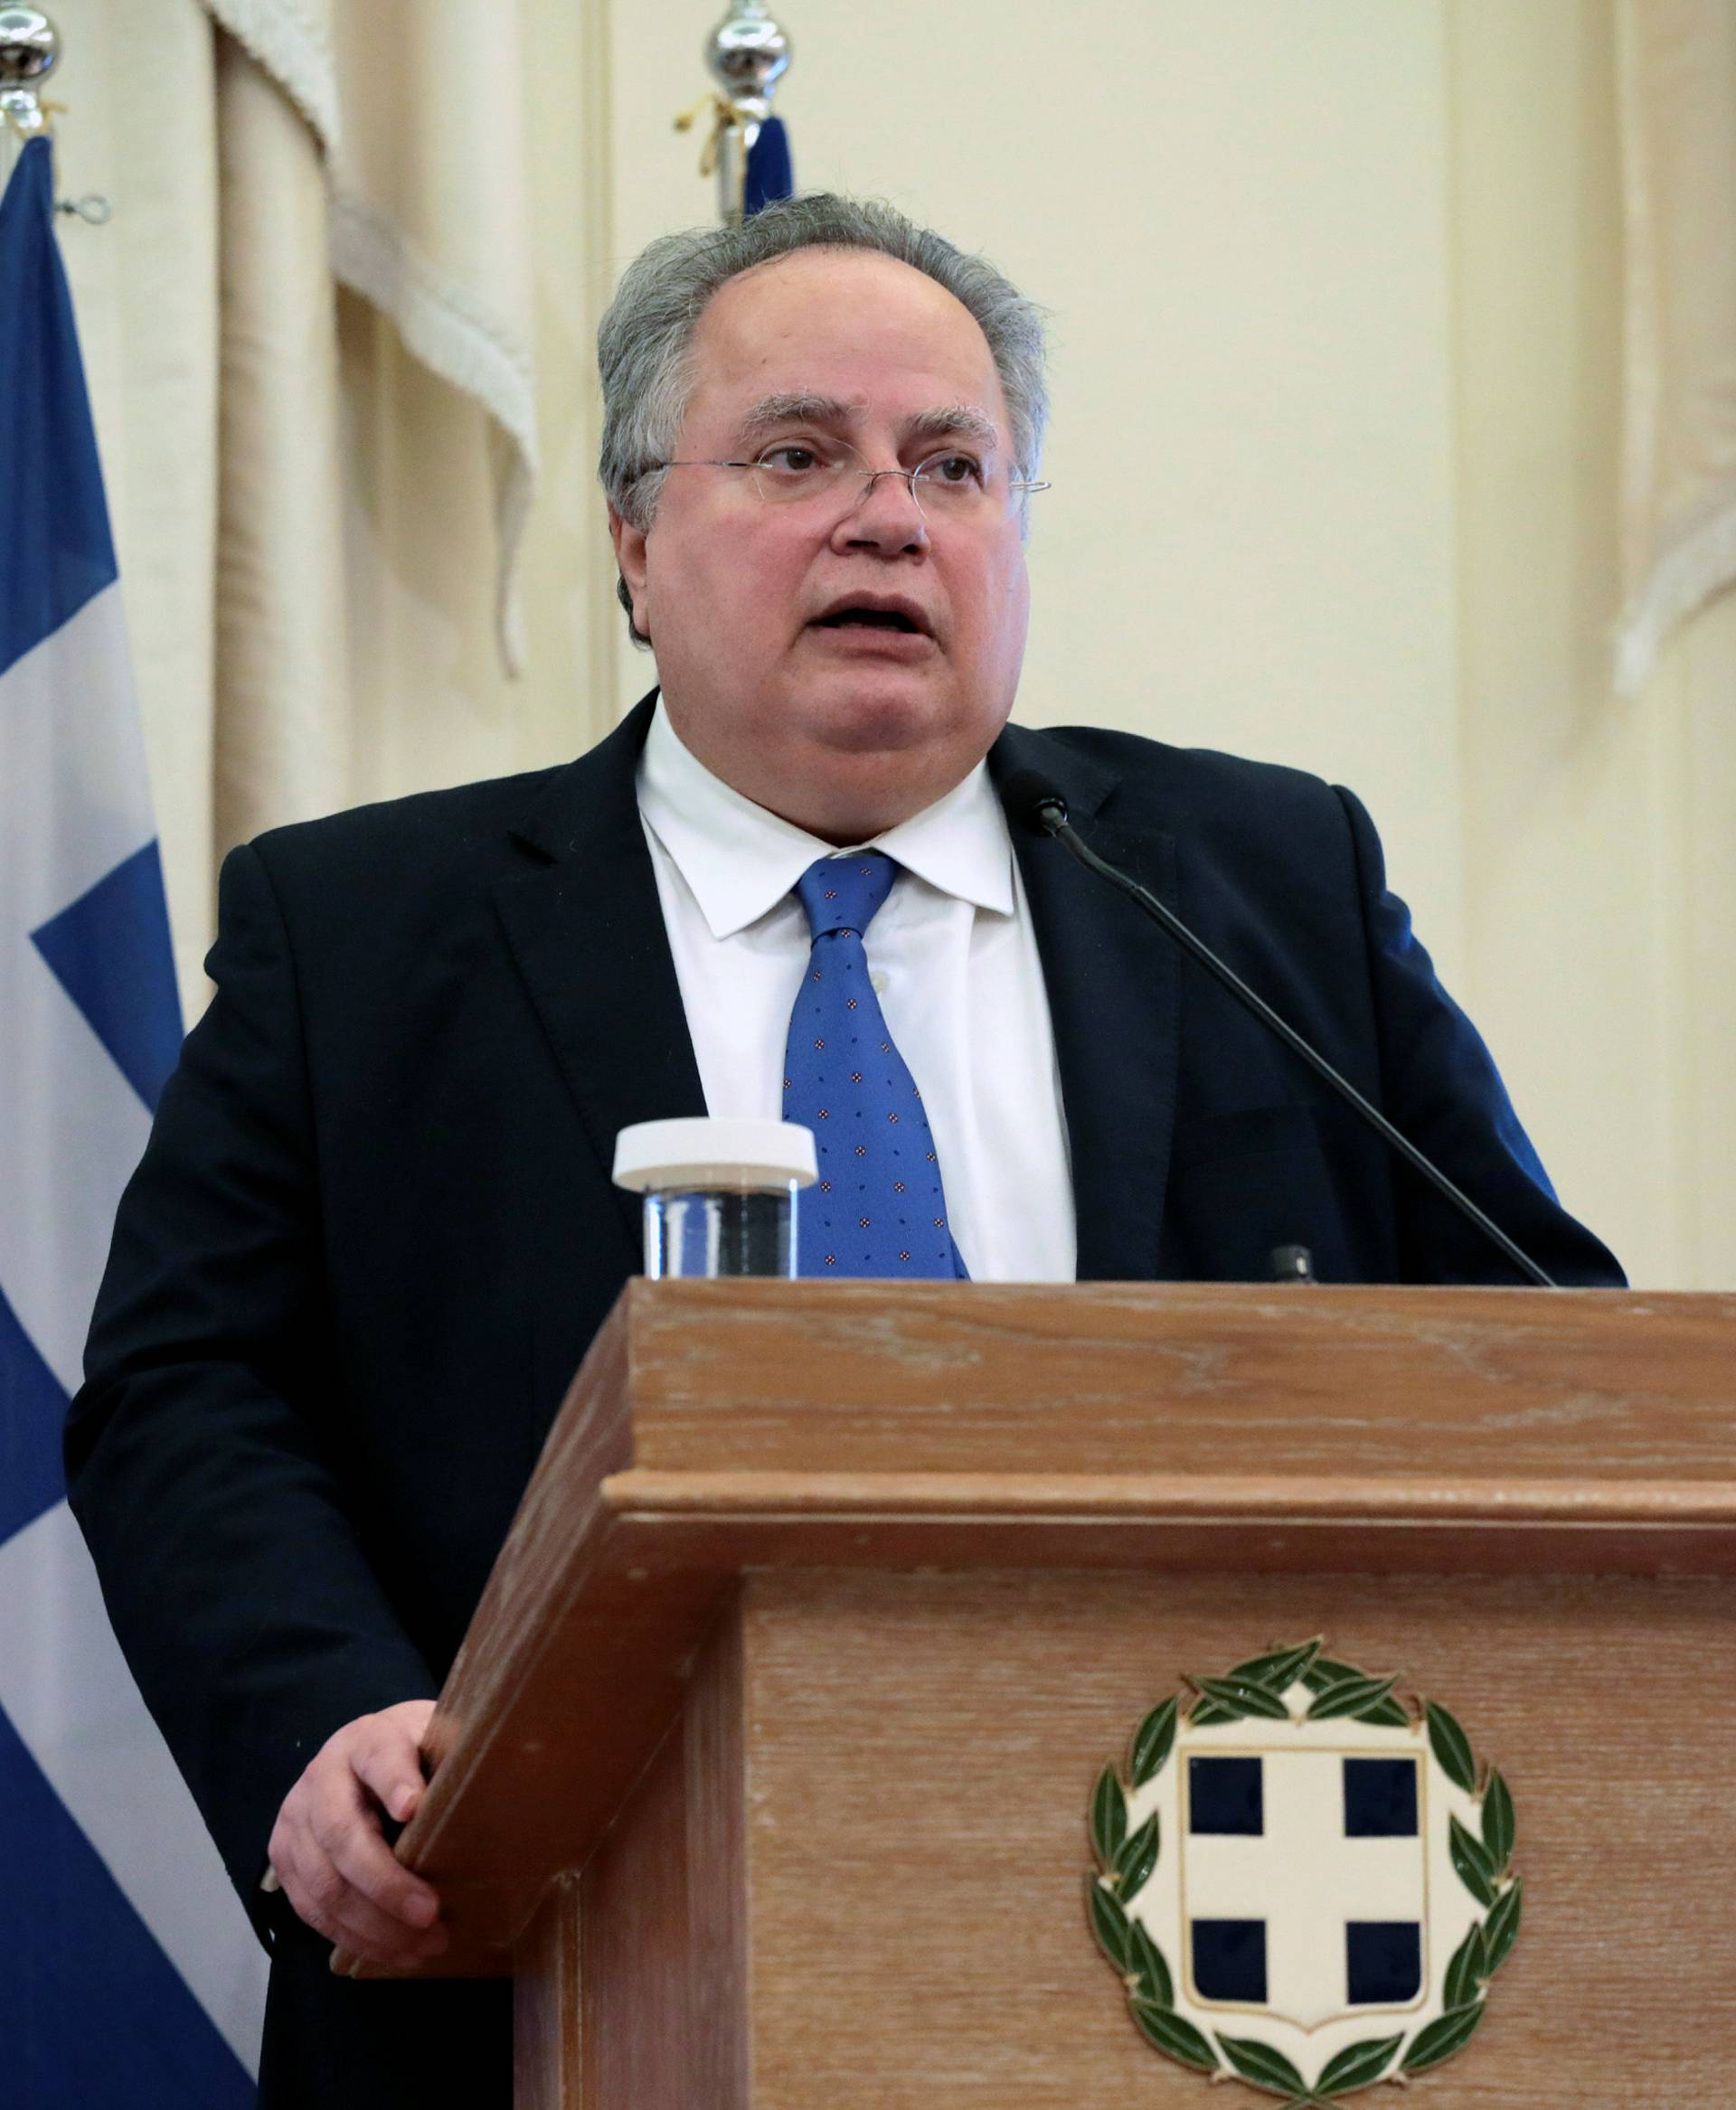 Greek Foreign Minister Kotzias meets with newly-appointed Cypriot Foreign Minister Christodoulides